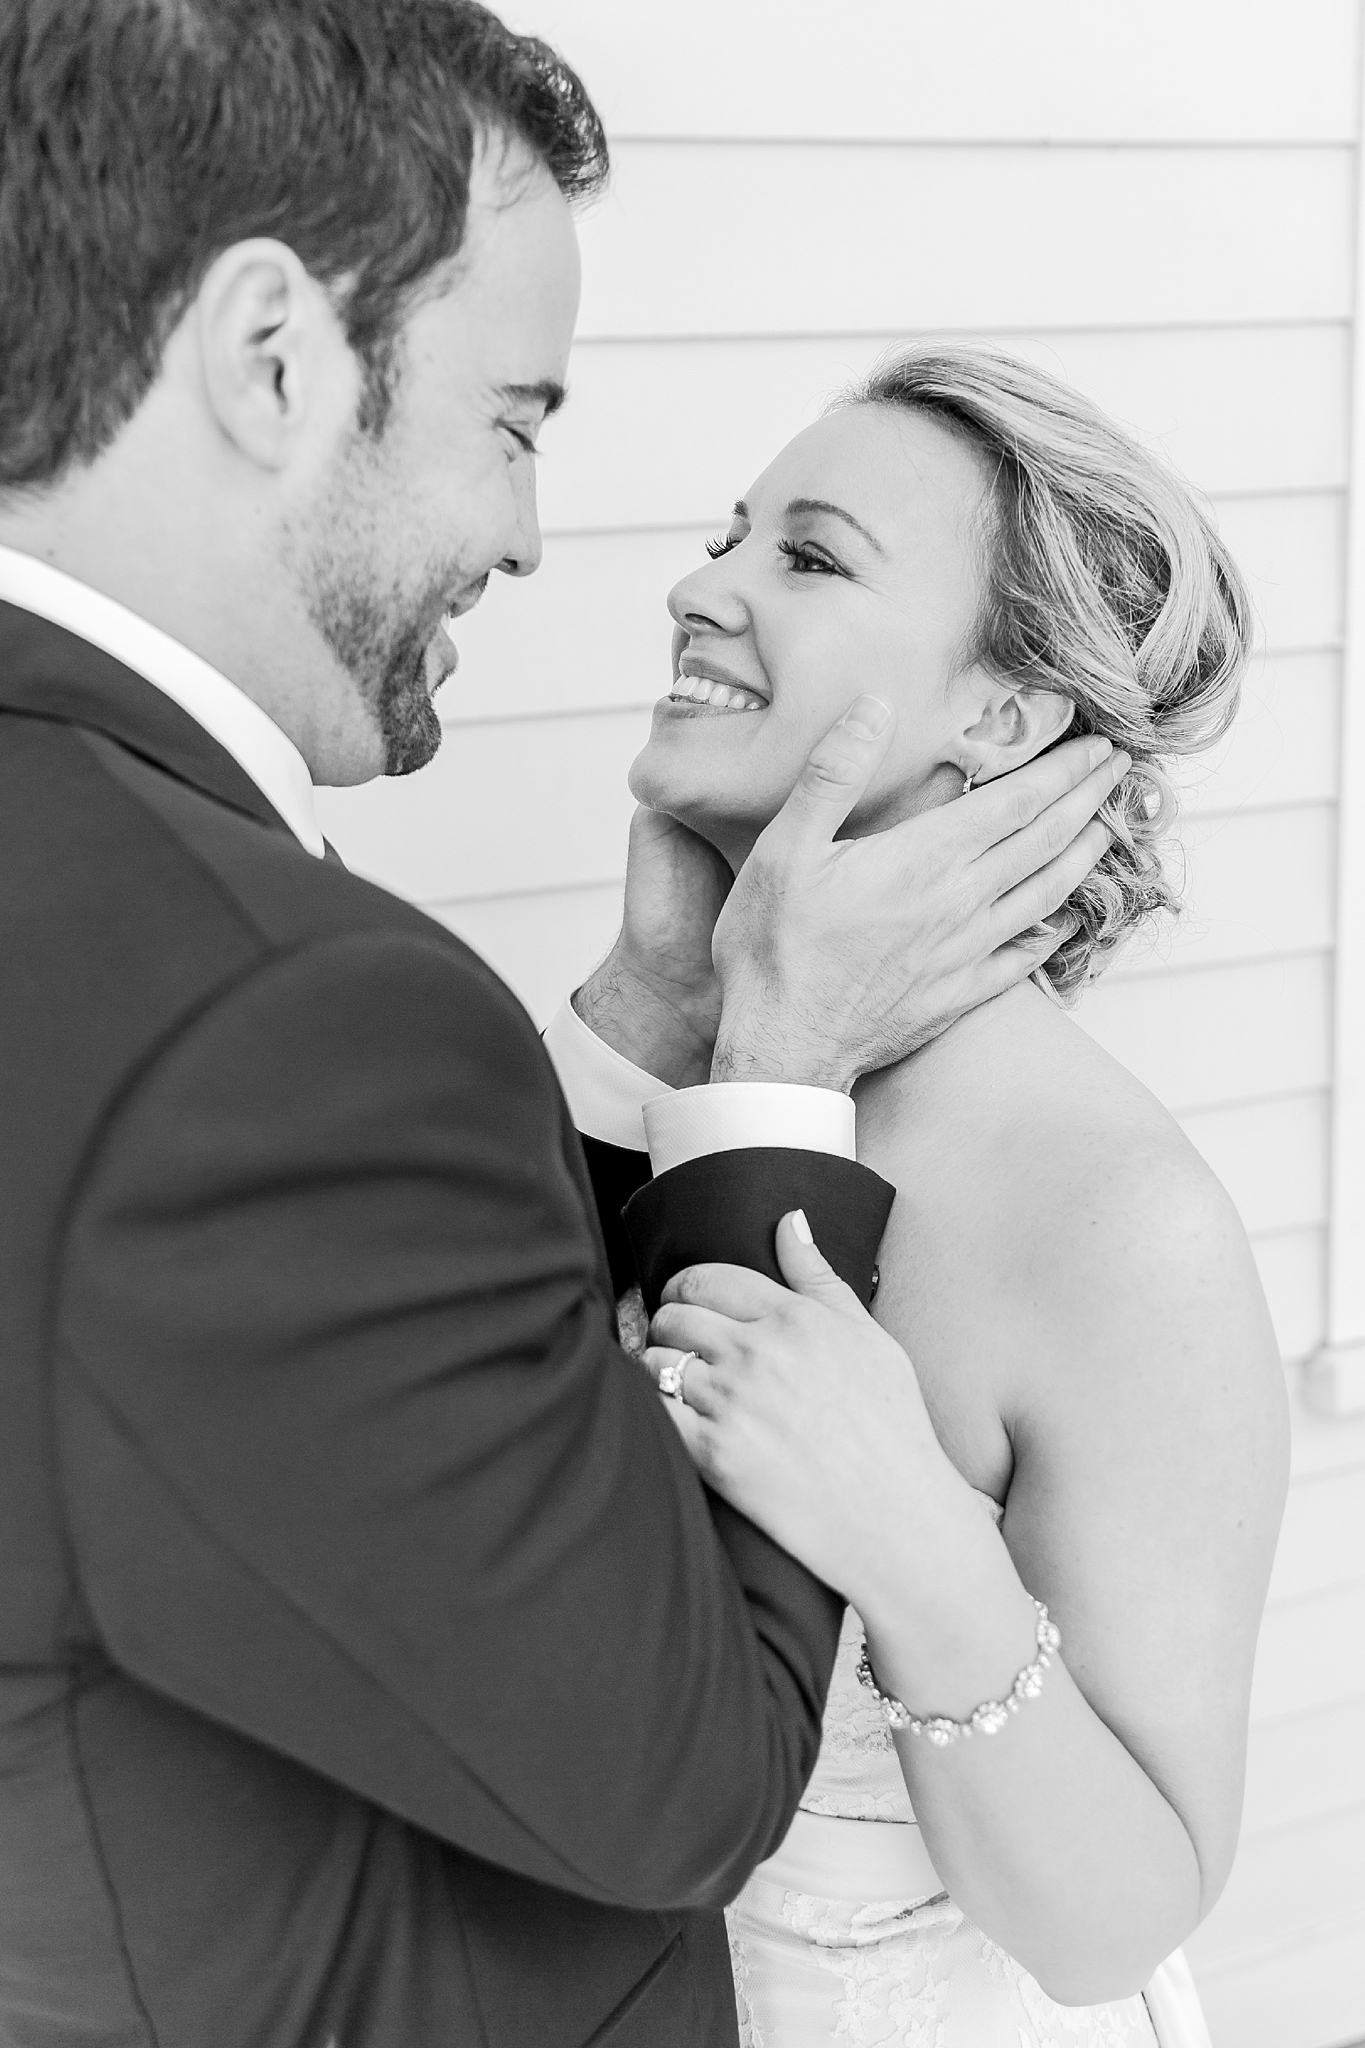 joyful-romantic-modern-laid-back-wedding-photography-in-detroit-ann-arbor-northern-mi-and-chicago-by-courtney-carolyn-photography_0027.jpg